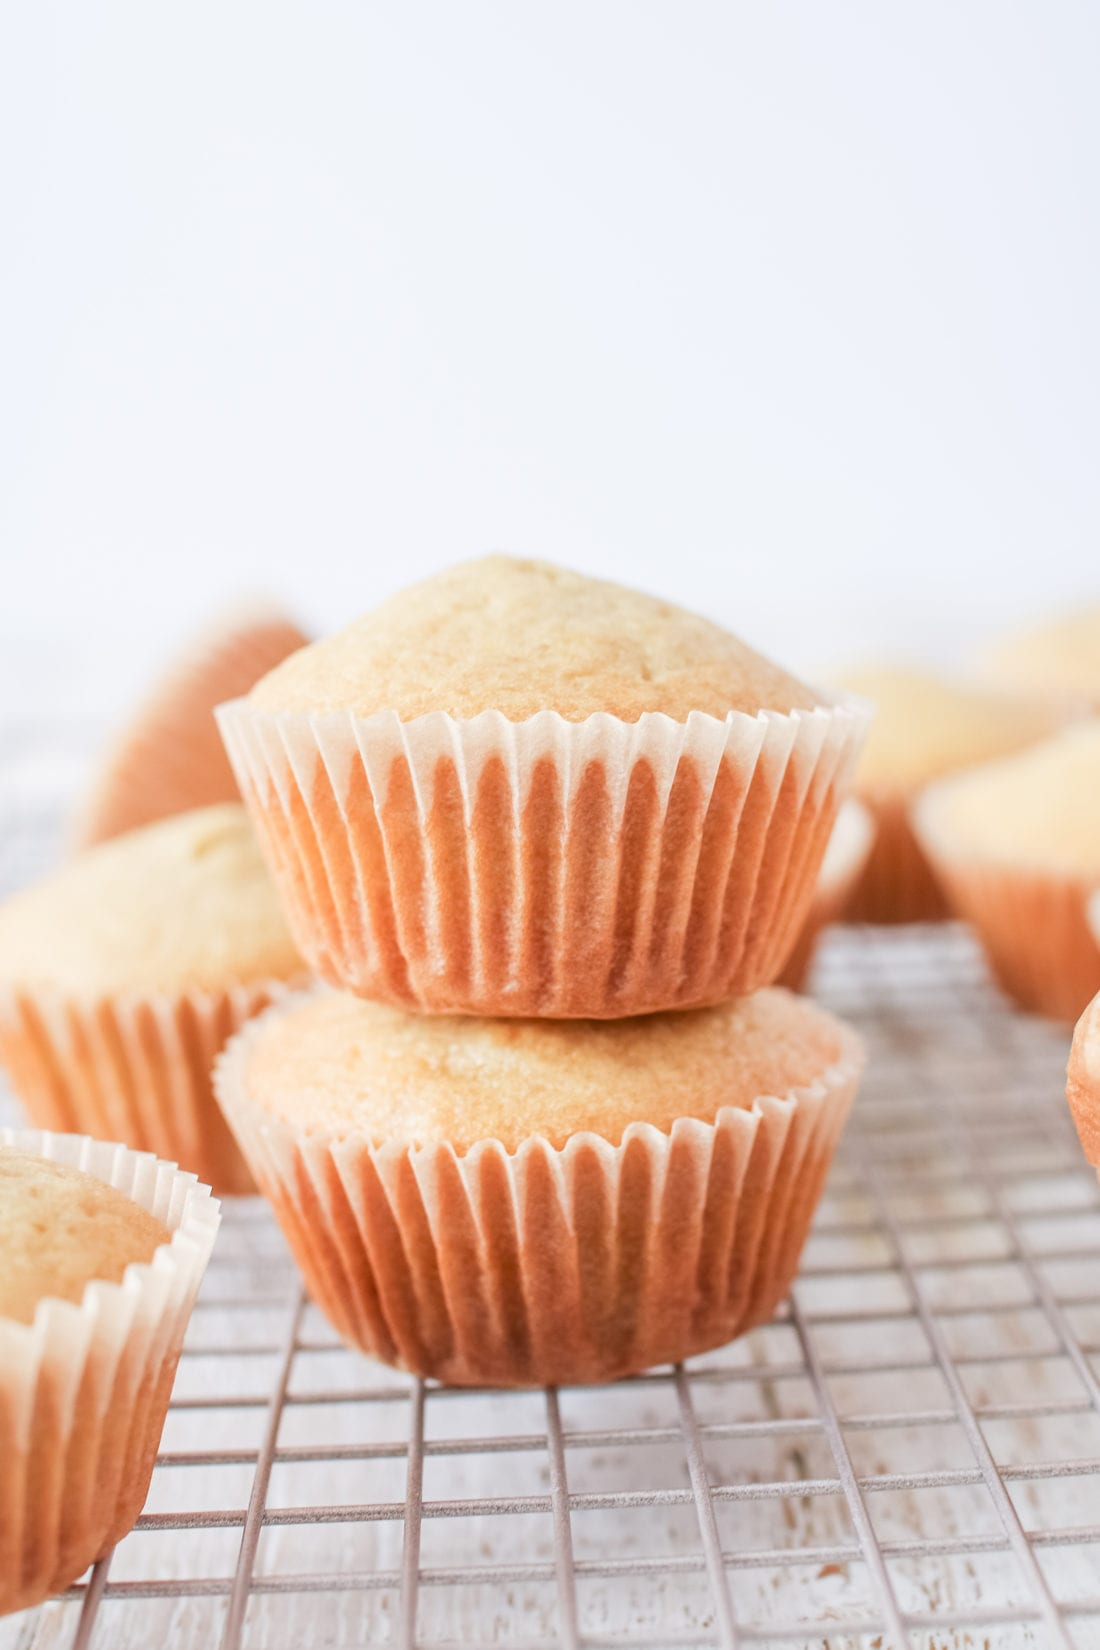 These light and fluffy vanilla cupcakes are a healthier twist on an old classic, made with spelt flour and lightly sweetened with honey!